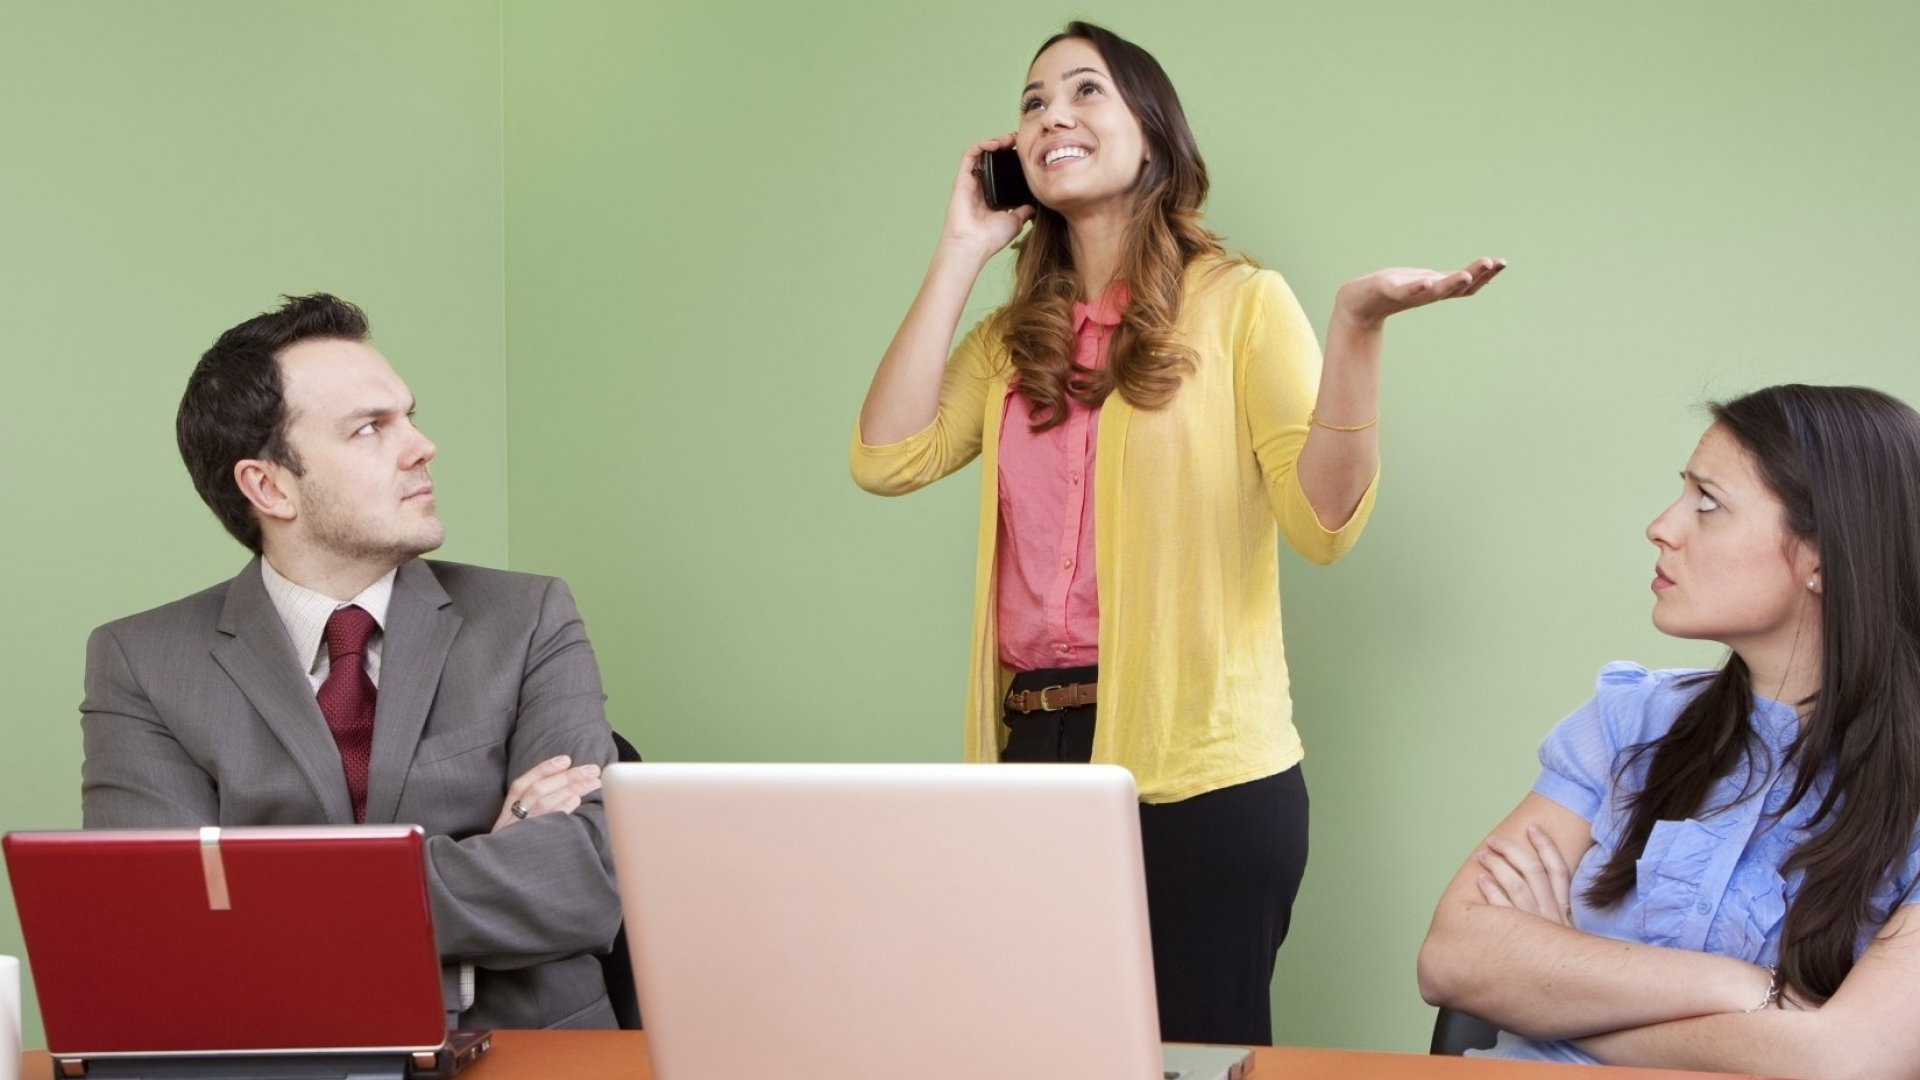 5 Most Annoying Etiquette Violations in a Co-Working Space